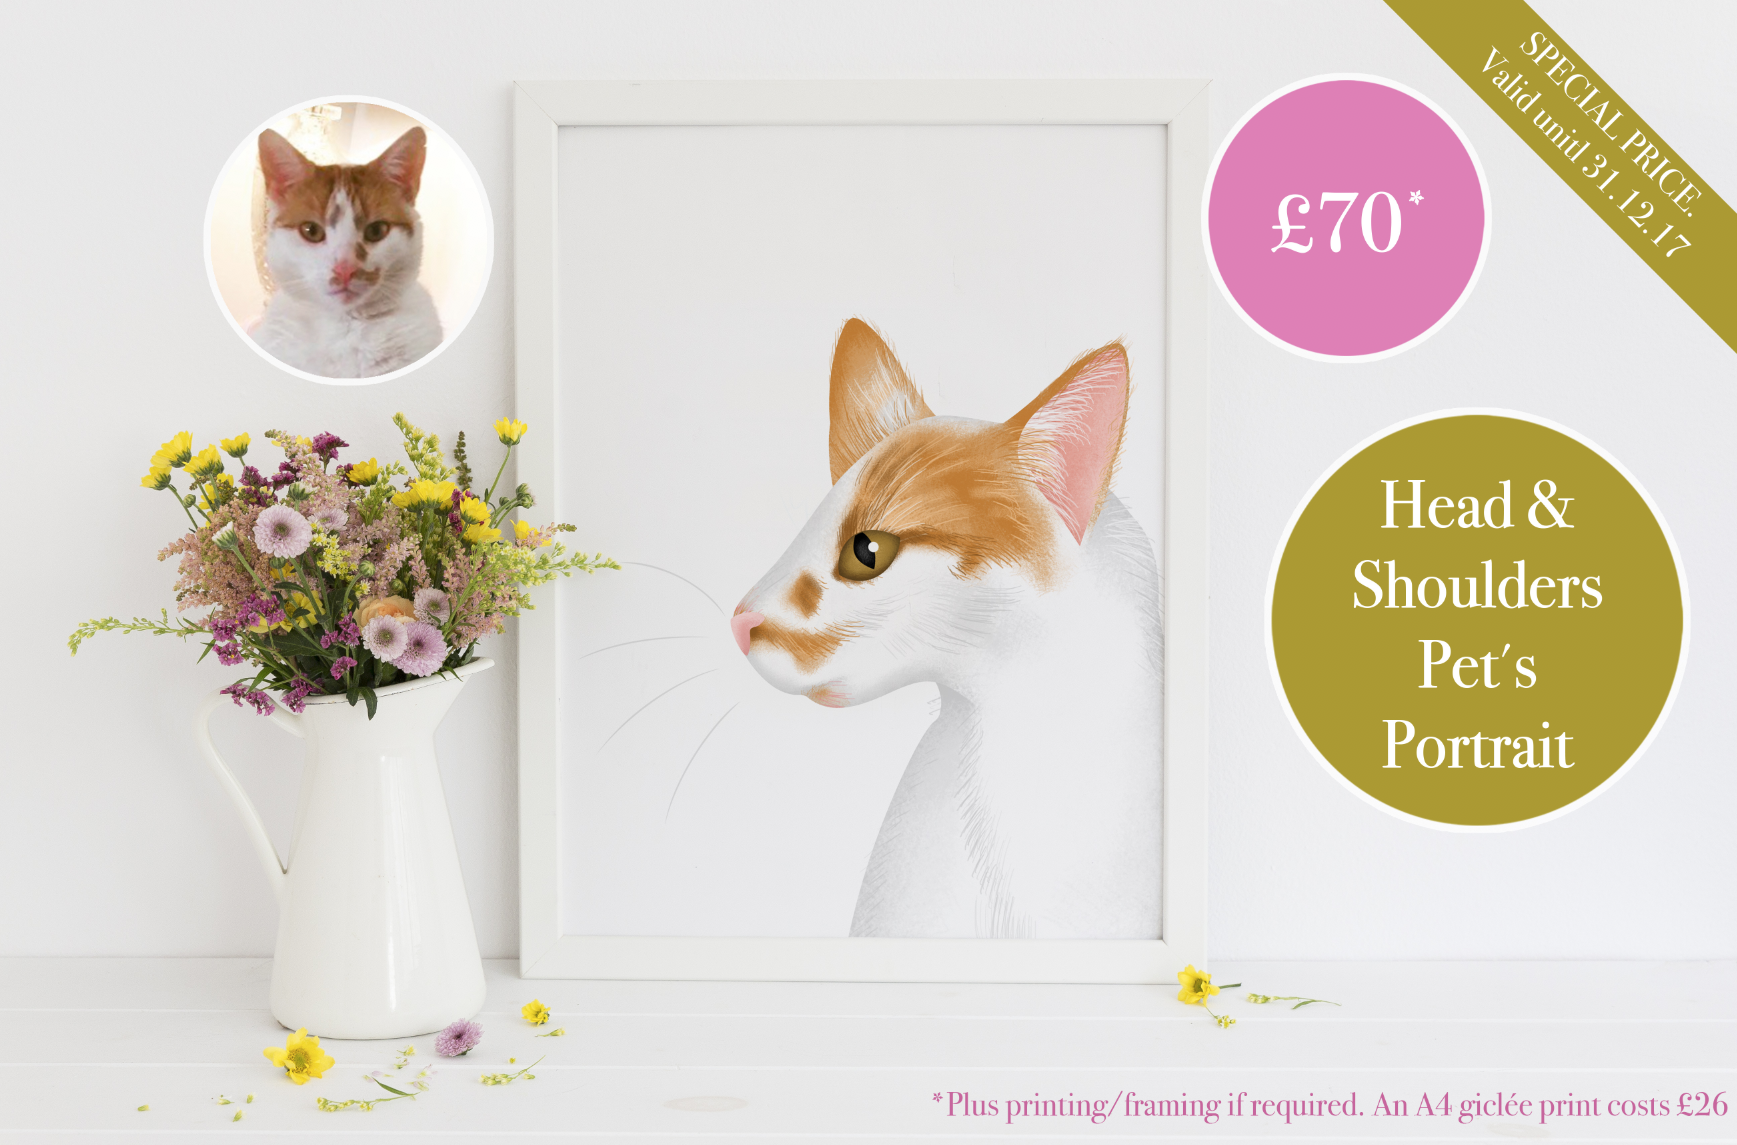 Pet's Portraits - from £70 (x1 pet illustrated from the neck upwards).